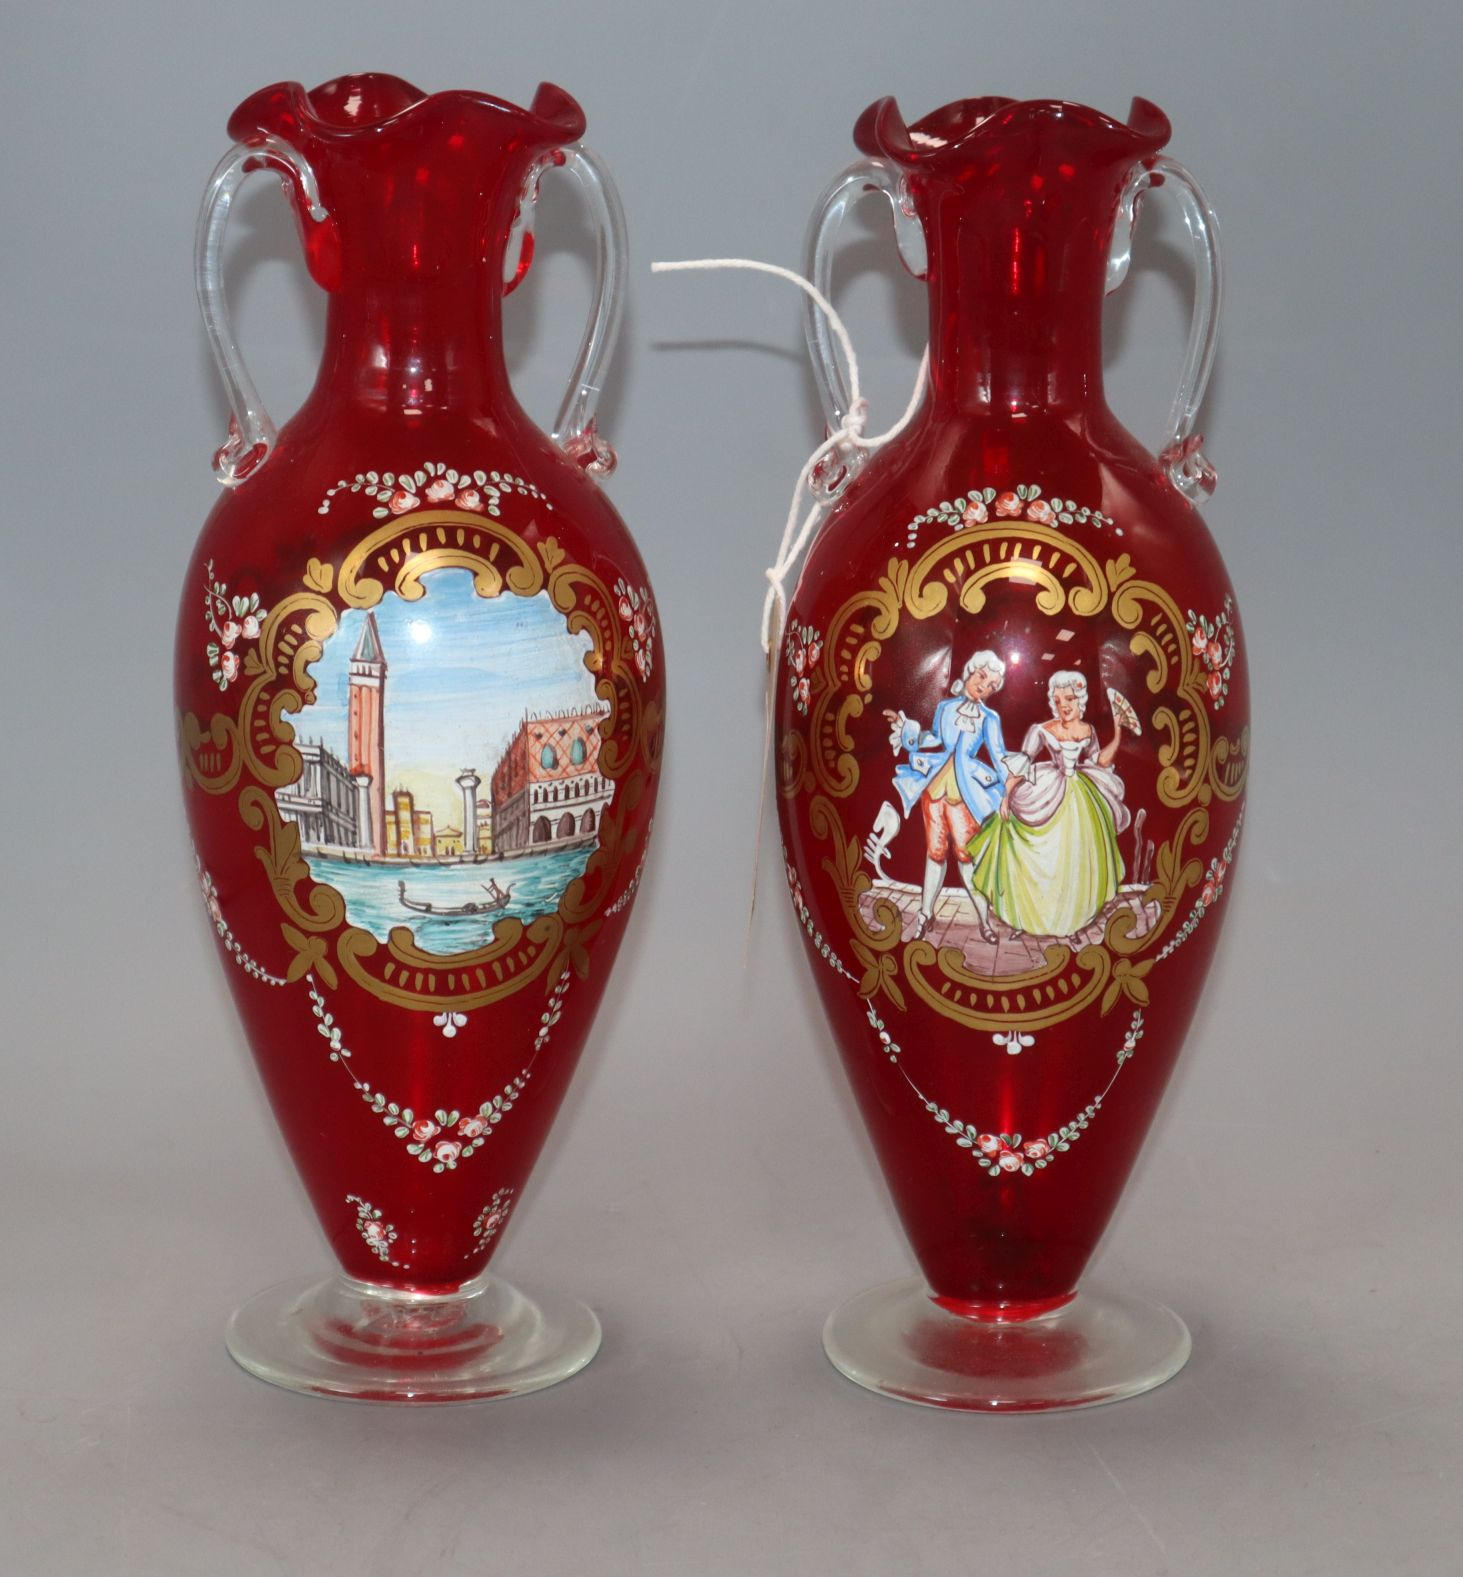 Lot 16 - A pair of hand painted Venetian glass vases height 24.5cm